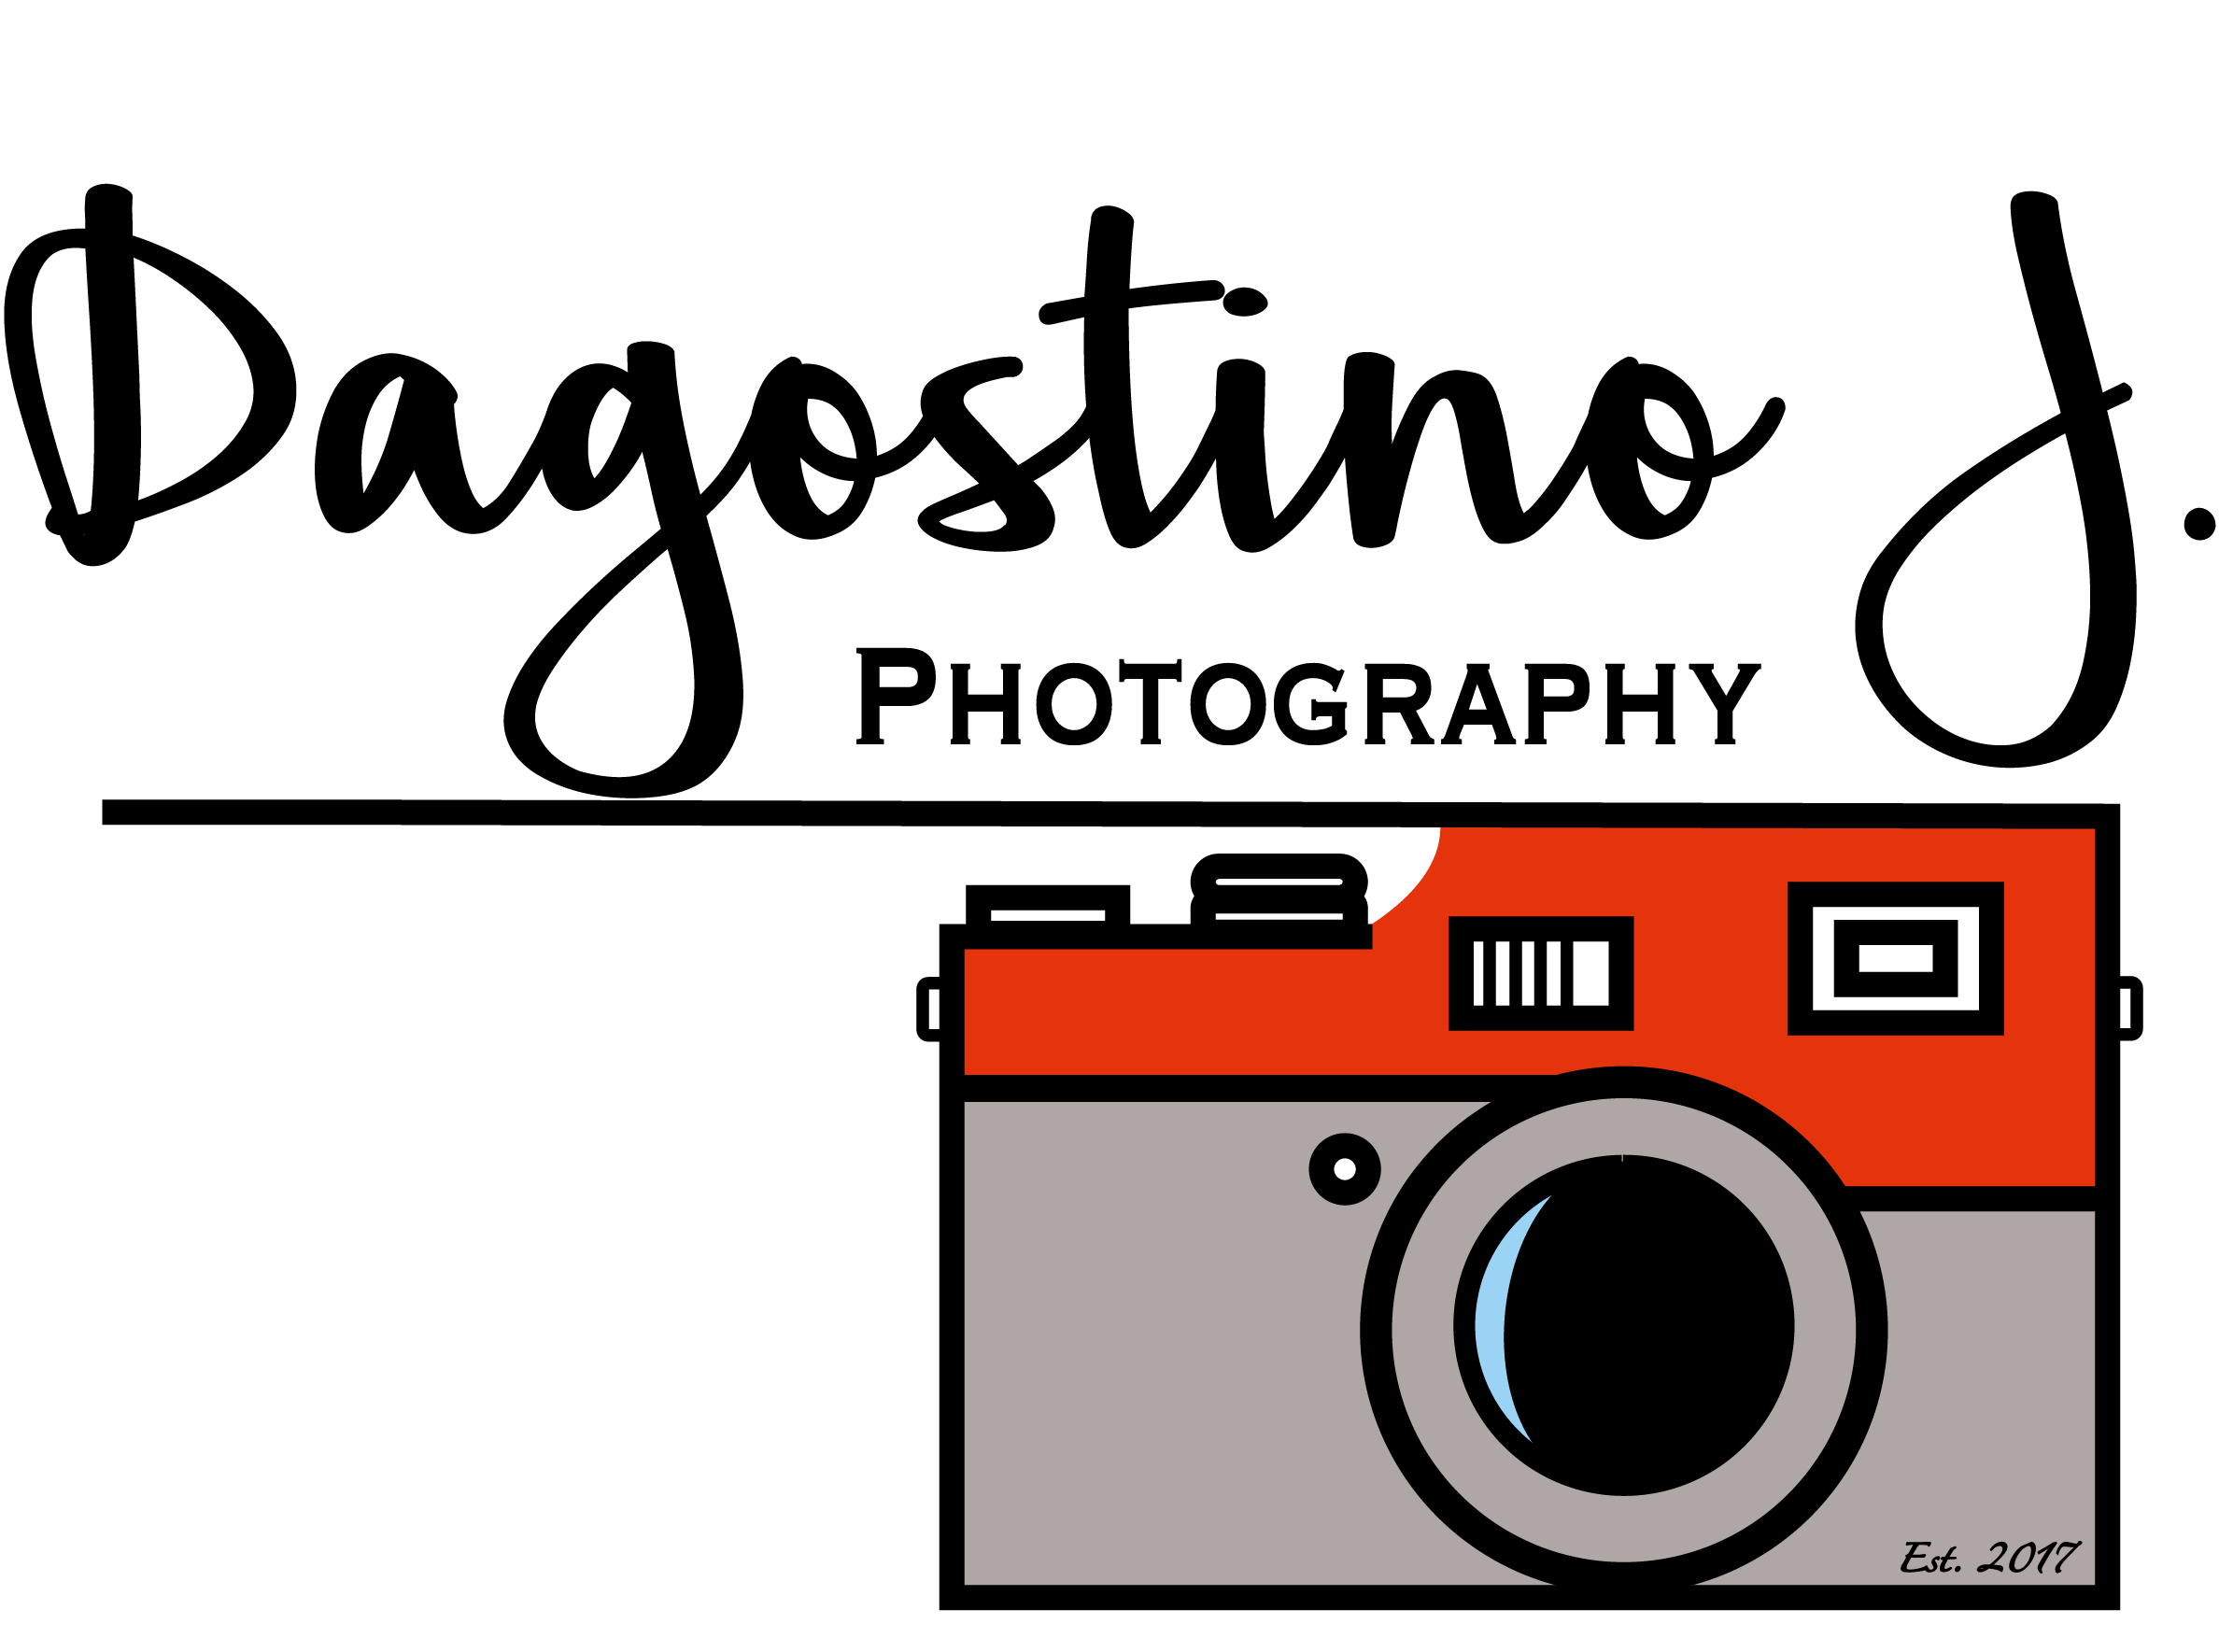 DagostinoJPhotography_Logo (Second Draft).png